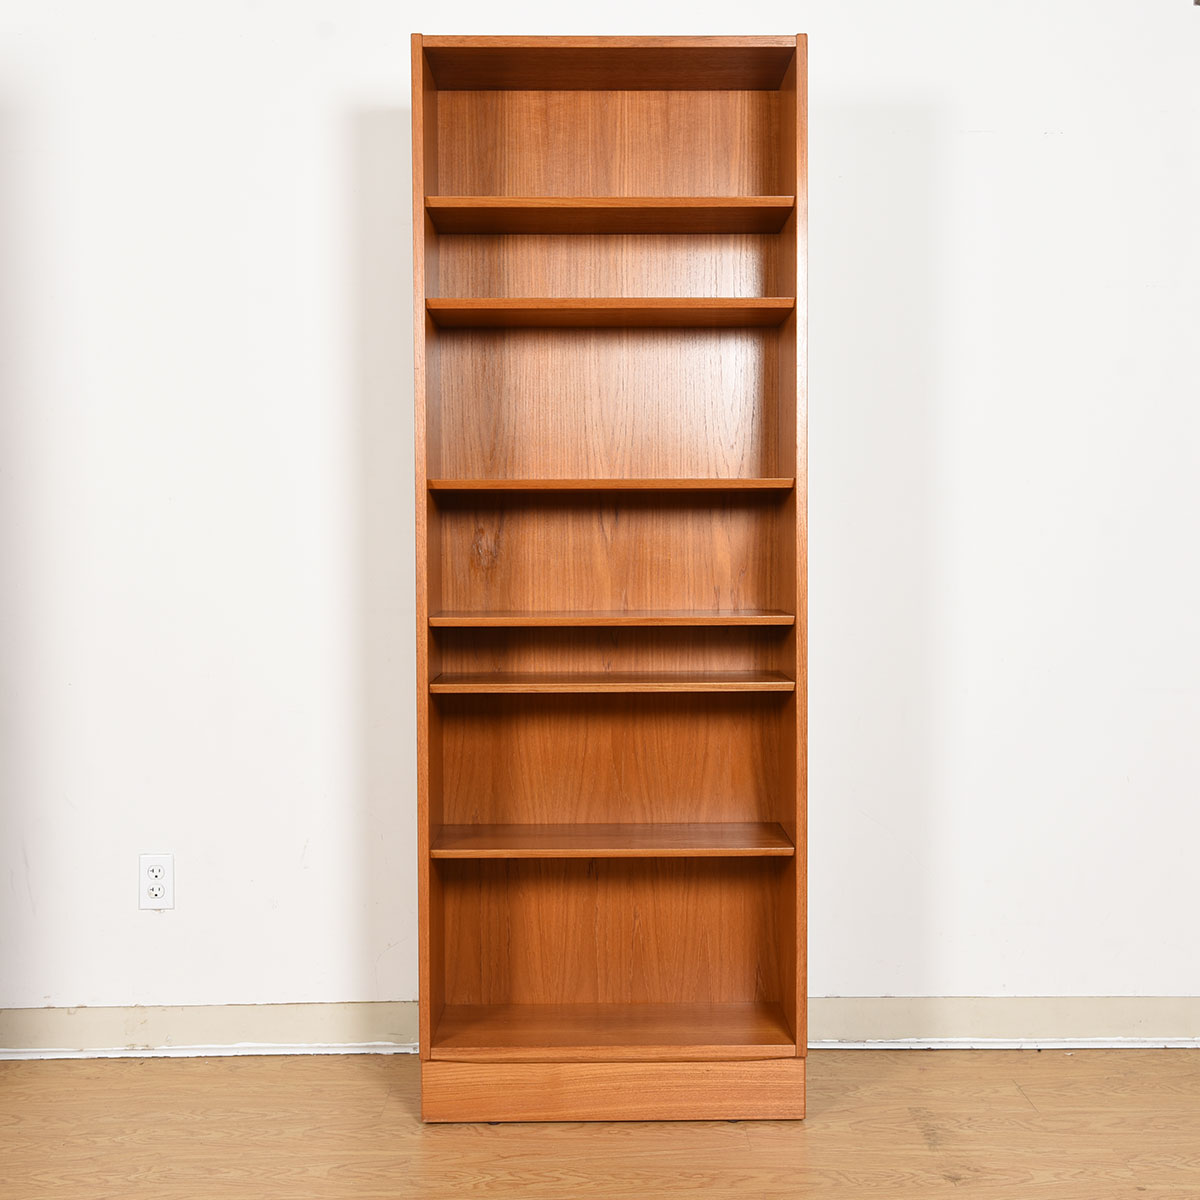 Teak 28″ Compact Adjustable Shelf Bookcase